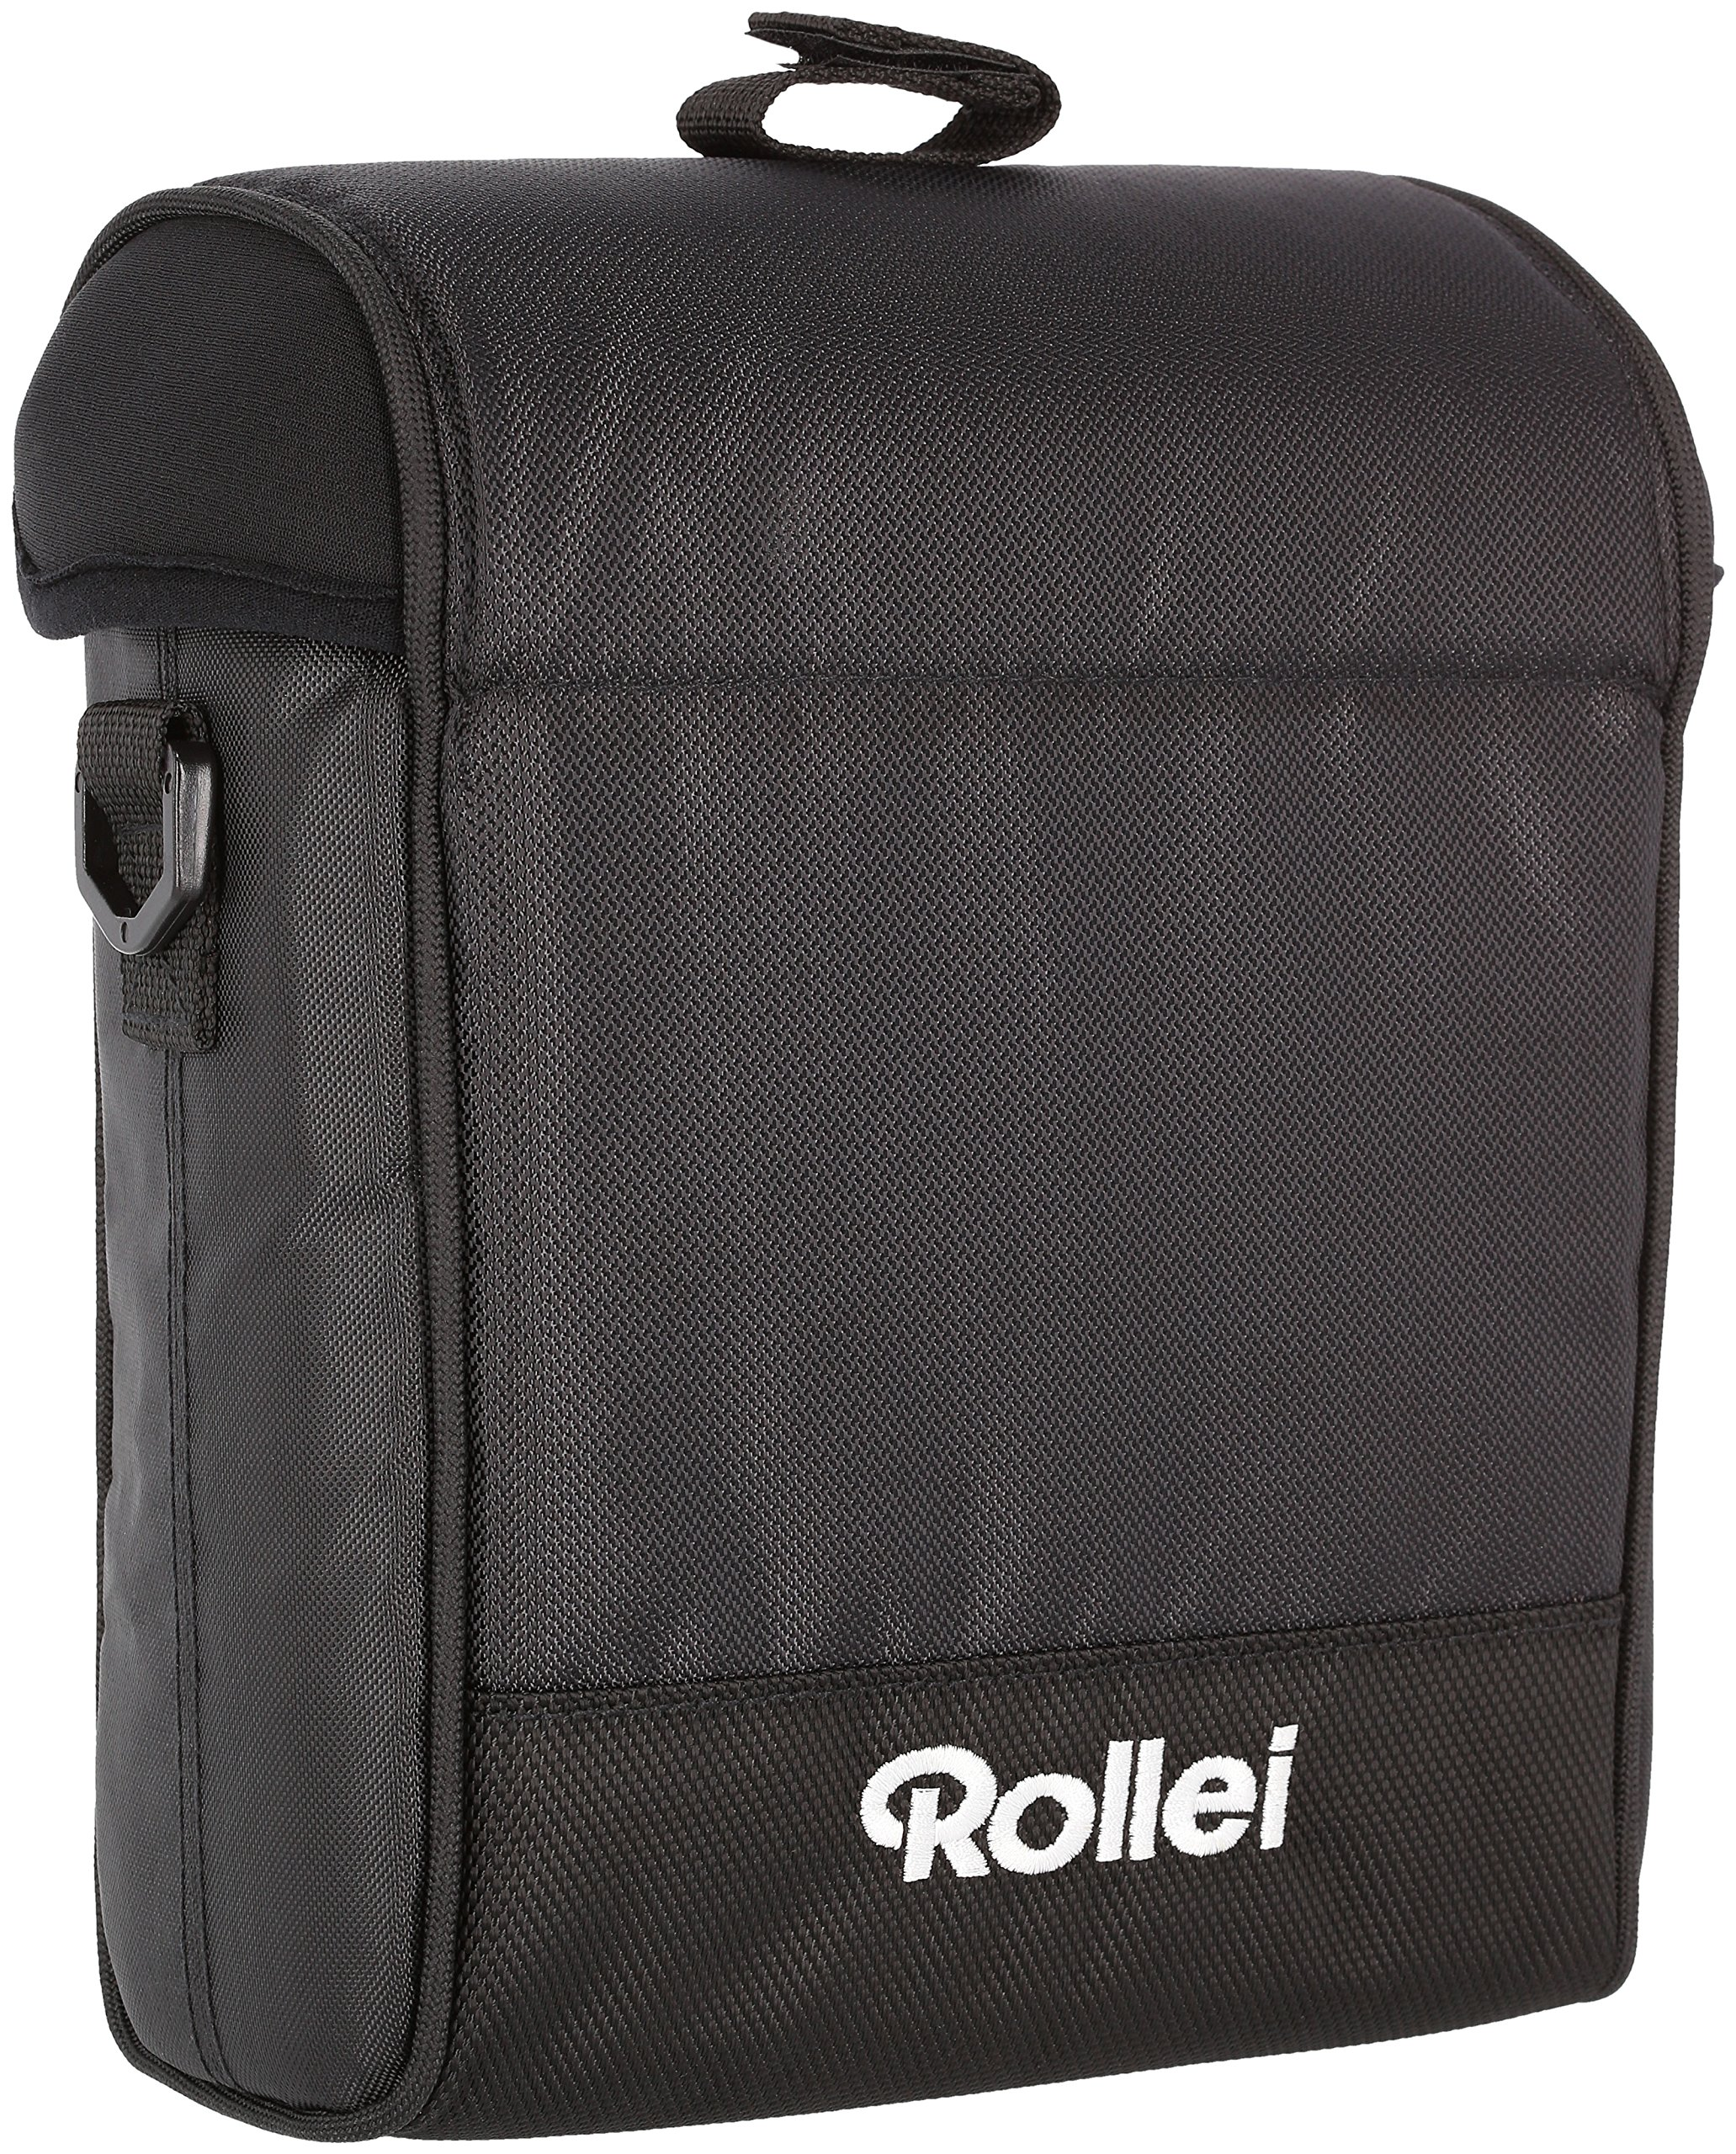 Rollei Square Filter Bag 150 mm - Padded Nylon Bag for Square Filters with a Width of 150 mm, incl. Shoulder Strap and Cleaning Cloth - Black by Rollei (Image #1)